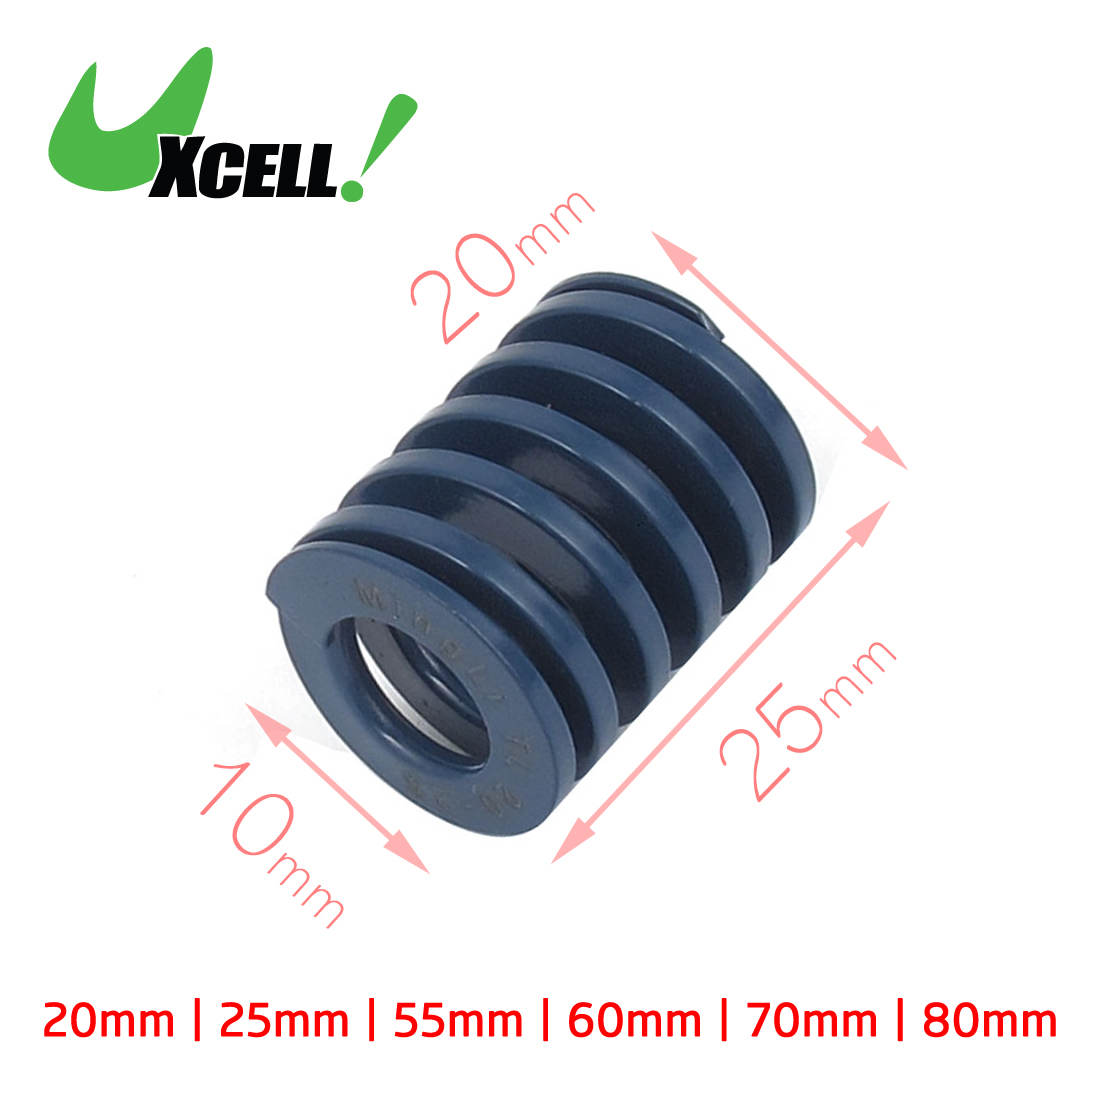 Uxcell Od 18mm Id 9mm Od 20mm Id 10mm Chromium Alloy Steel Light Load Die Blue Spring Length 60mm 70mm 80mm 30mm 80mm x 30mm aluminium flat rectangular bar 80 30mm width 80mm thickness 30mm 6061 t6